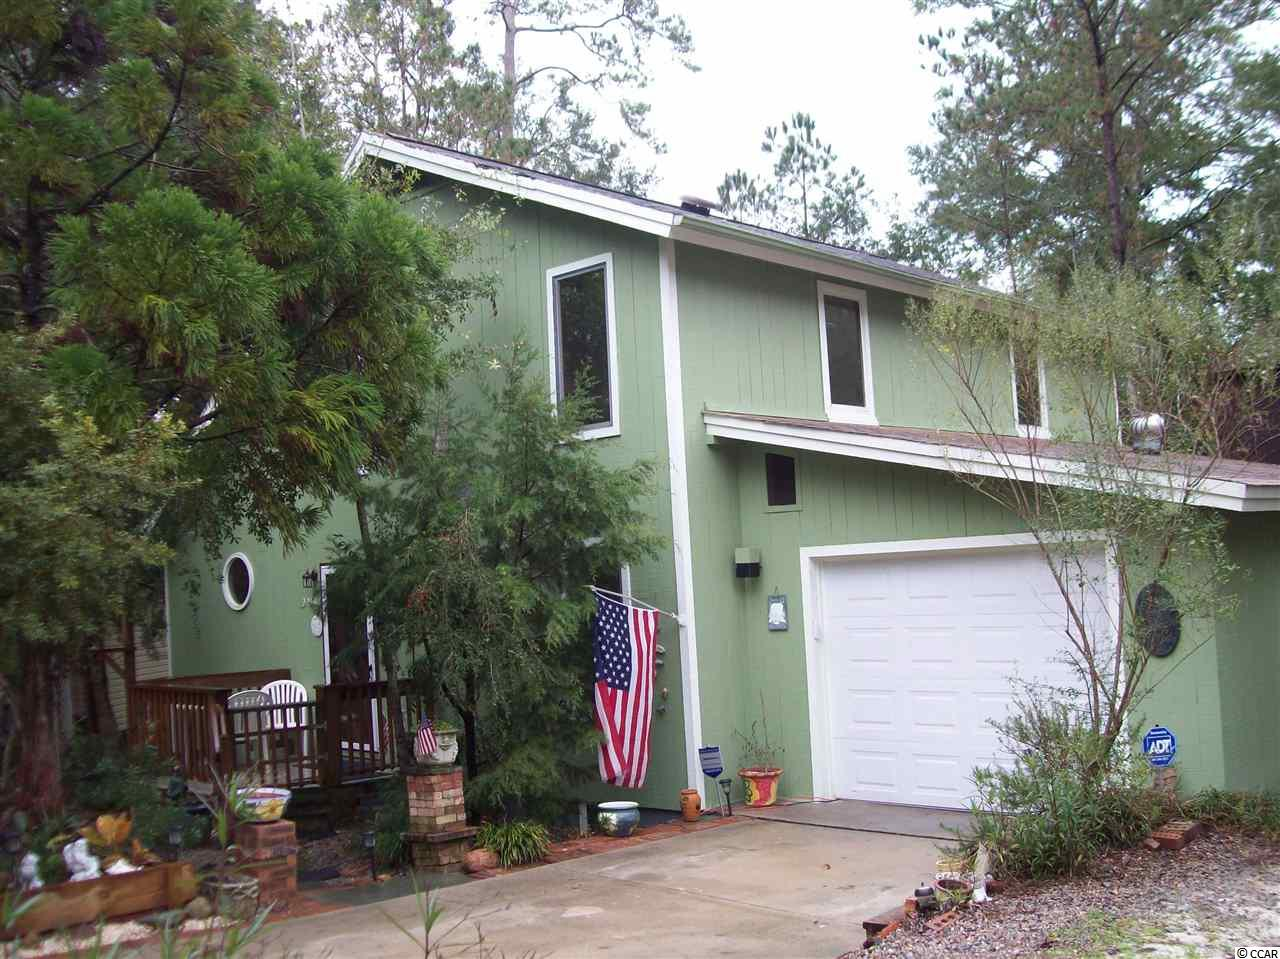 This 3bd/2ba home is 1.5 stories located in a beautiful waterway communty with fishing pier, boat ramp, tennis courts and Olympic size pool ...all of this and more... you can get as involved as you want or not. Close to shopping, dining ,entertainment, fishing, golfing.